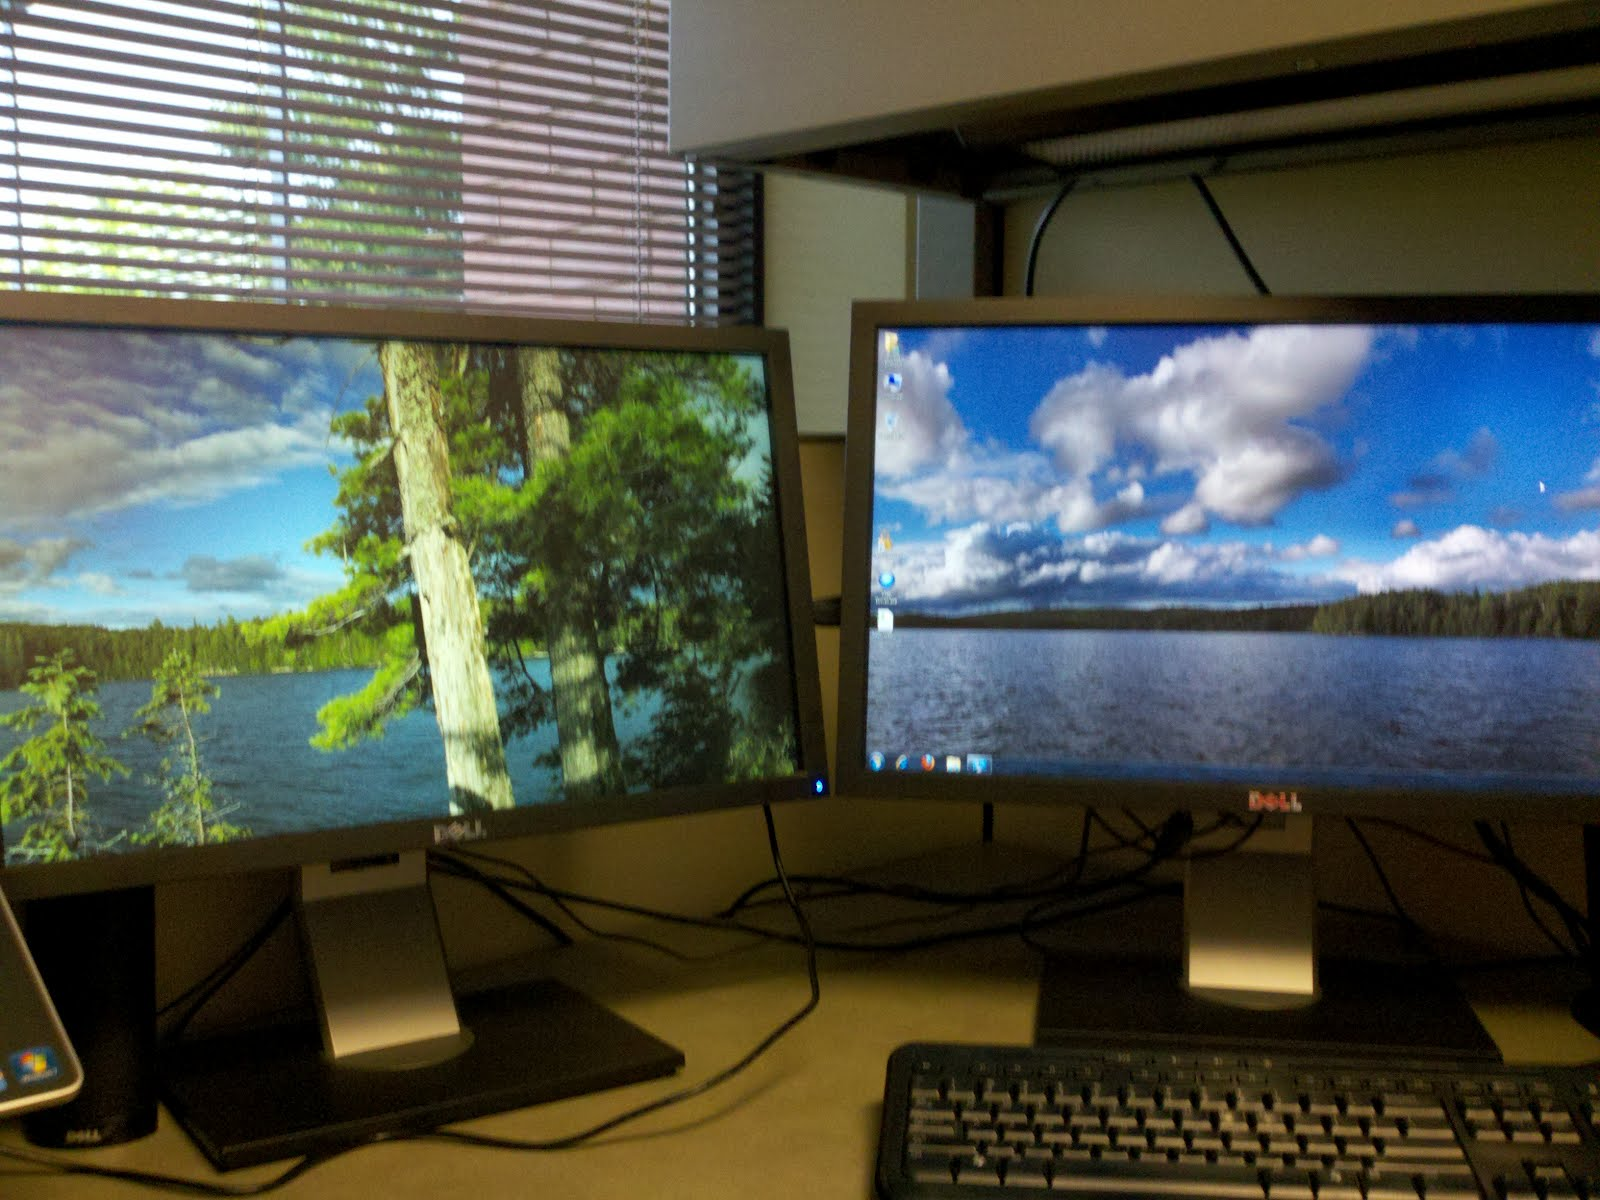 Bryant Brabson Windows 7 Dual Monitor Wallpaper Tiles In The Wrong